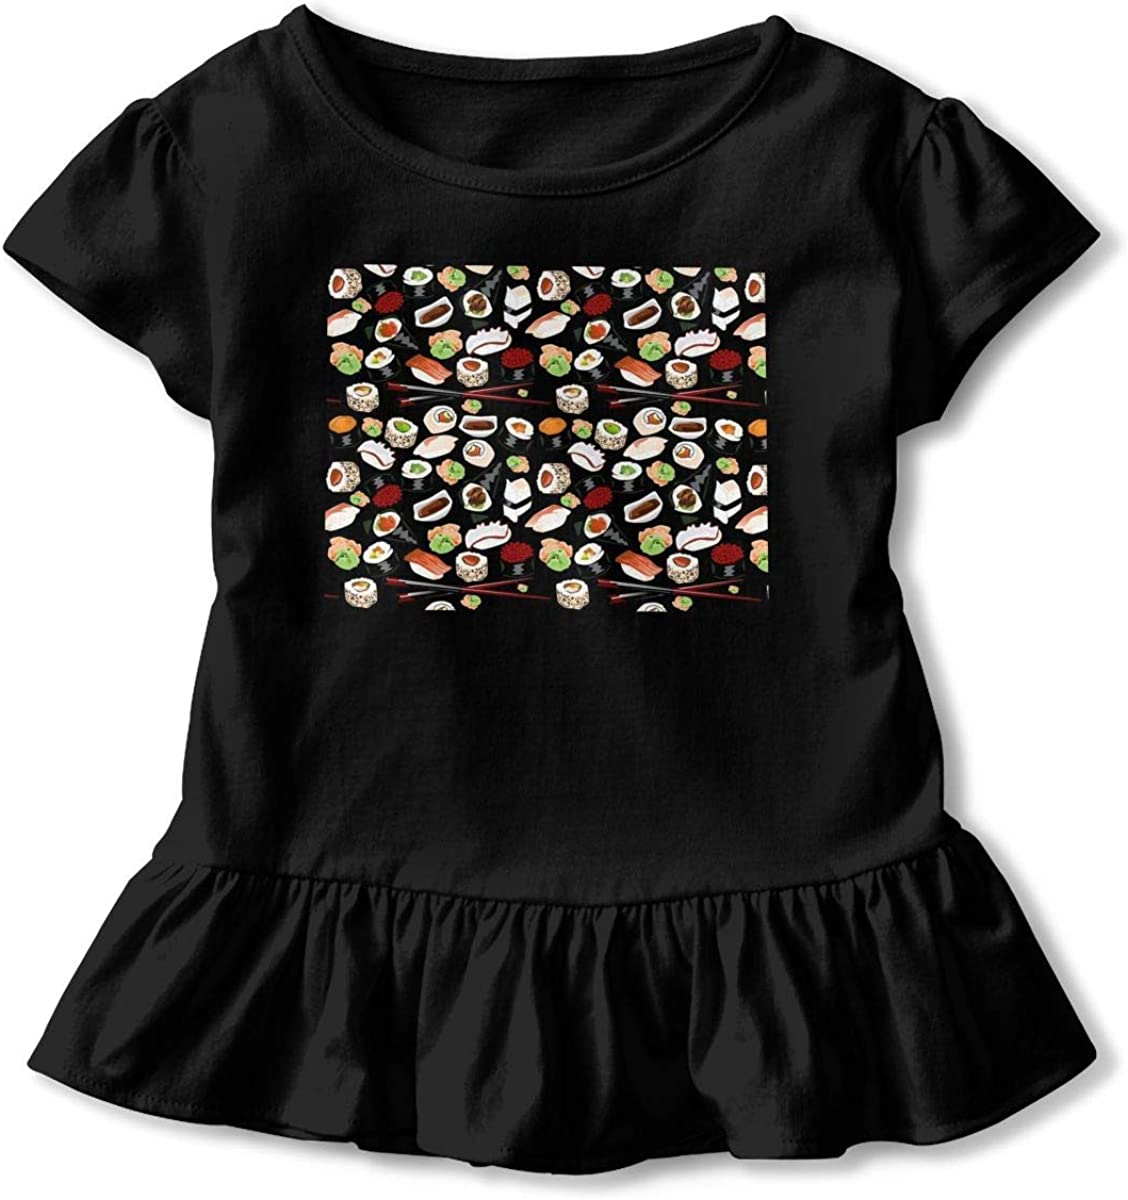 Lponvx Japanese Sushi Baby Girl Short Sleeve T-Shirt Ruffles Graphic Outfits for 2-6 Years Old Baby